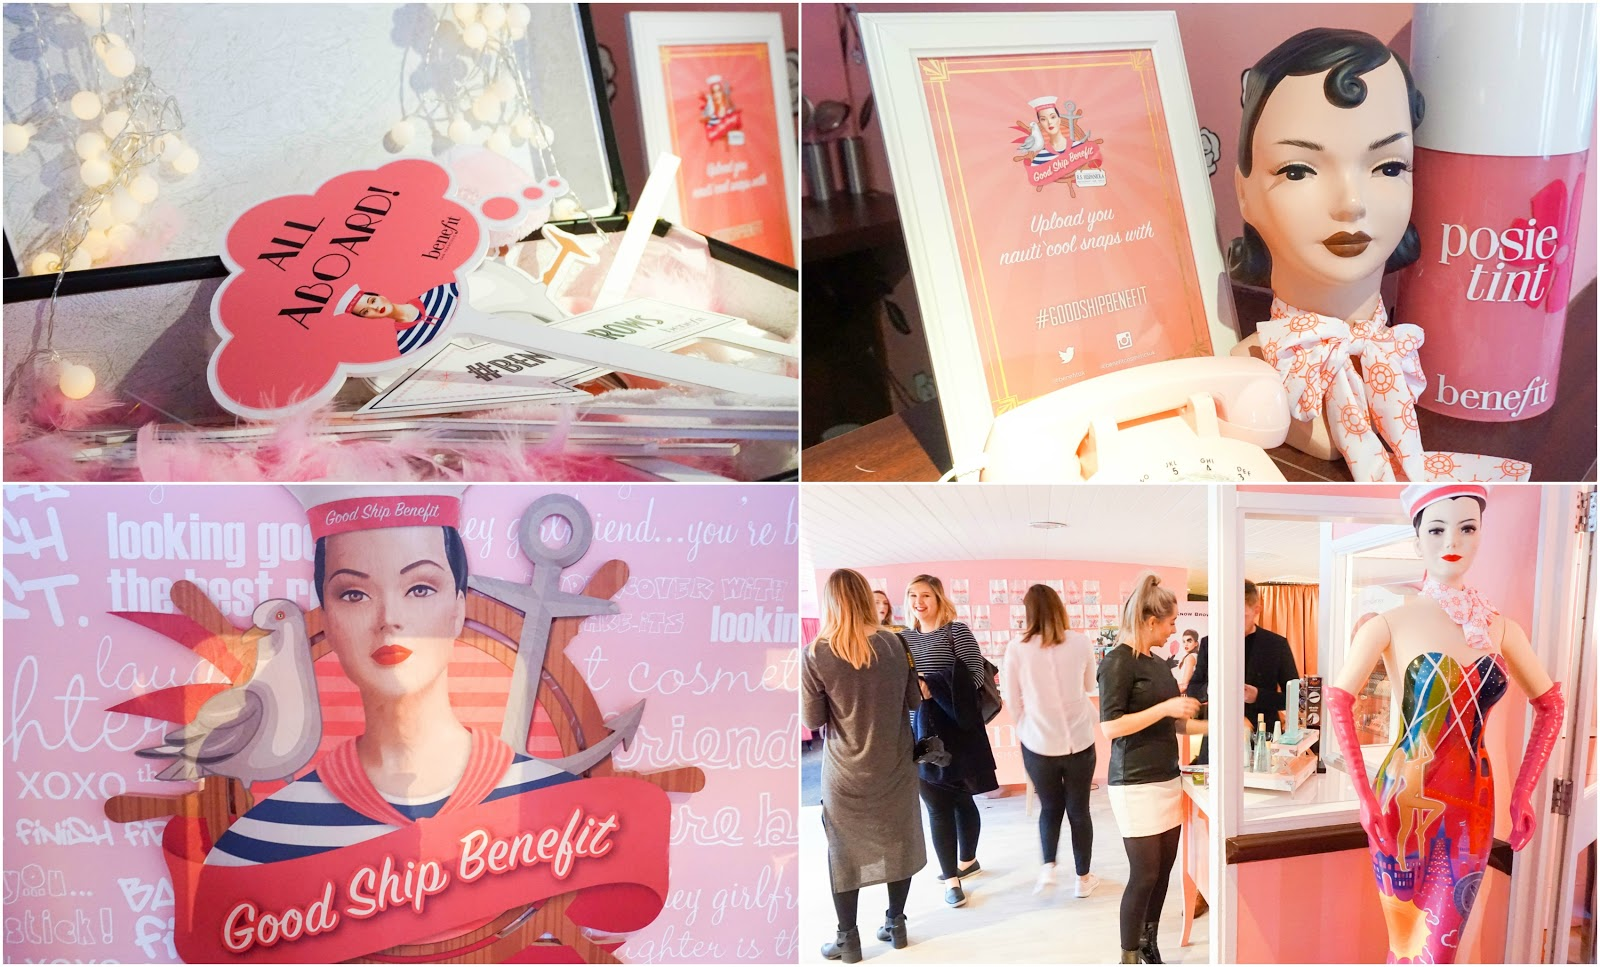 #GoodShipBenefit with House Of Fraser